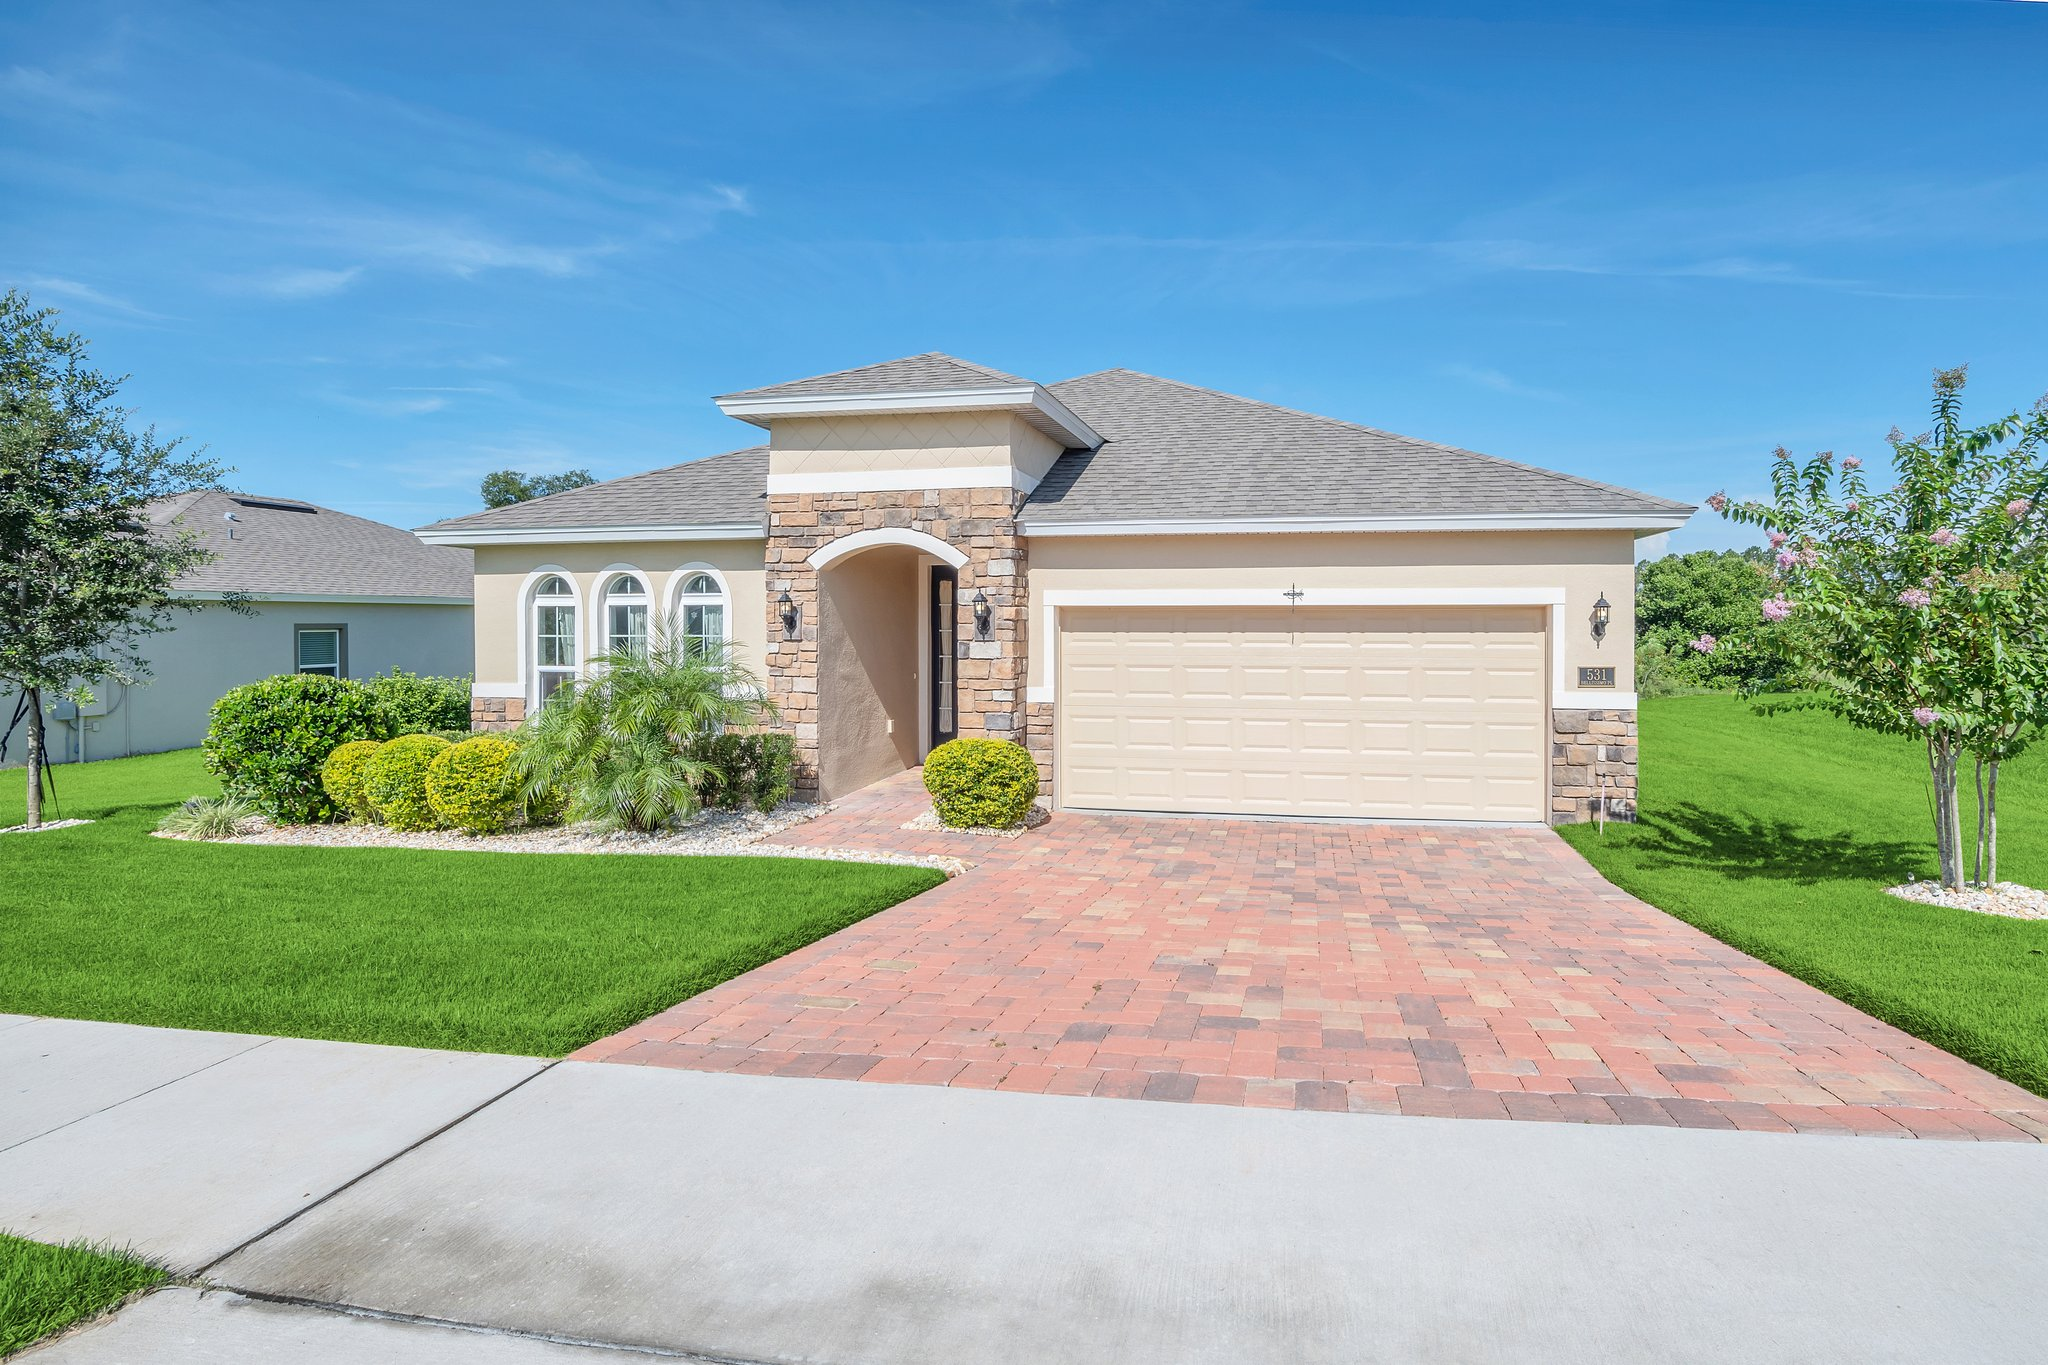 531 Bellissimo Pl, Howey-In-The-Hills, FL 34737, USA Photo 1